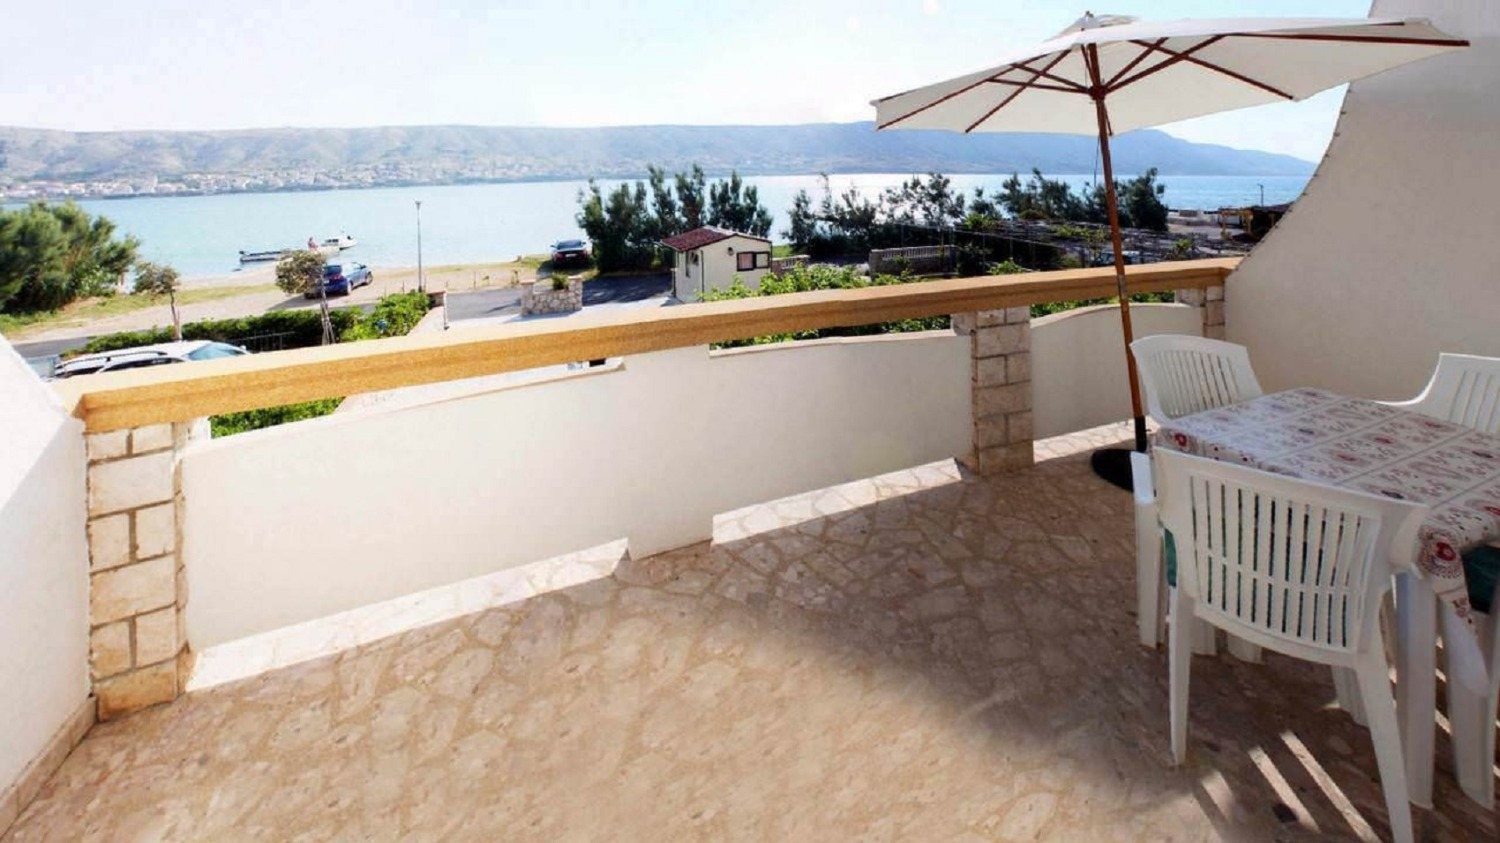 Apartments, Pag, Island of Pag - Apartments  Stjepan - 10m from beach: